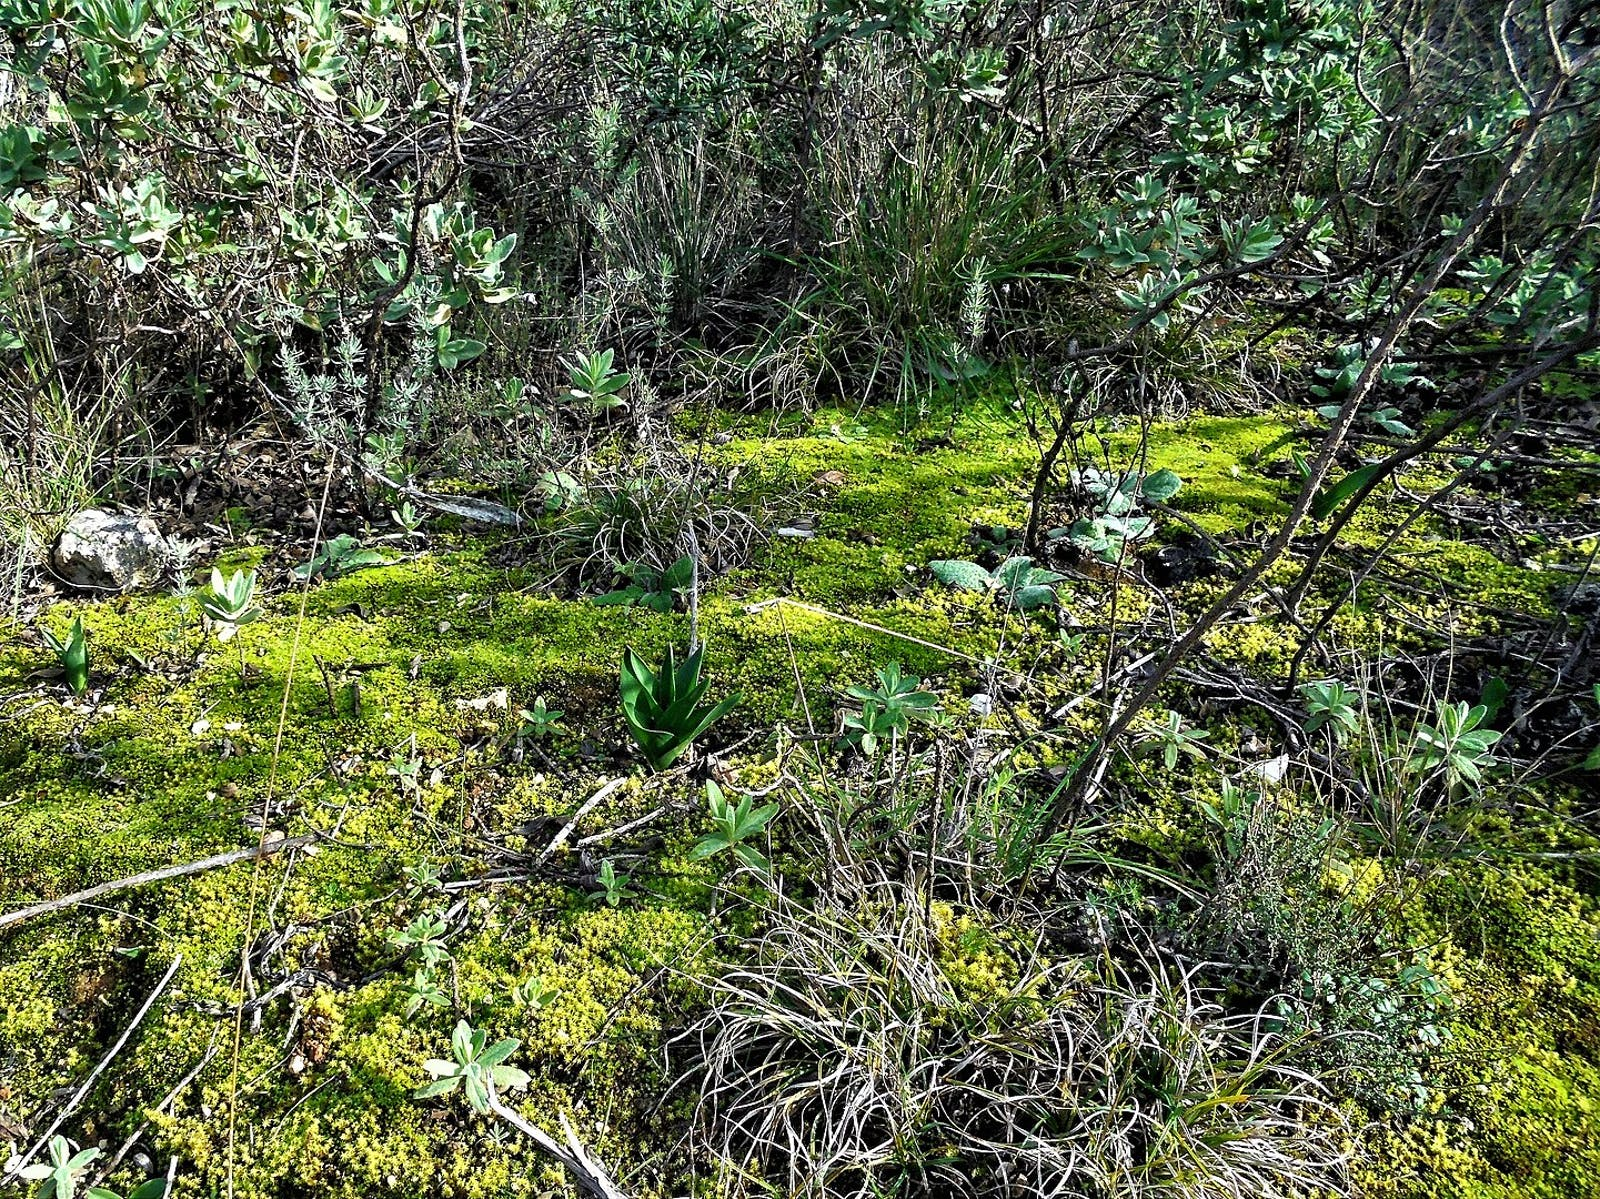 Southwest Iberian Mediterranean Sclerophyllous and Mixed Forests